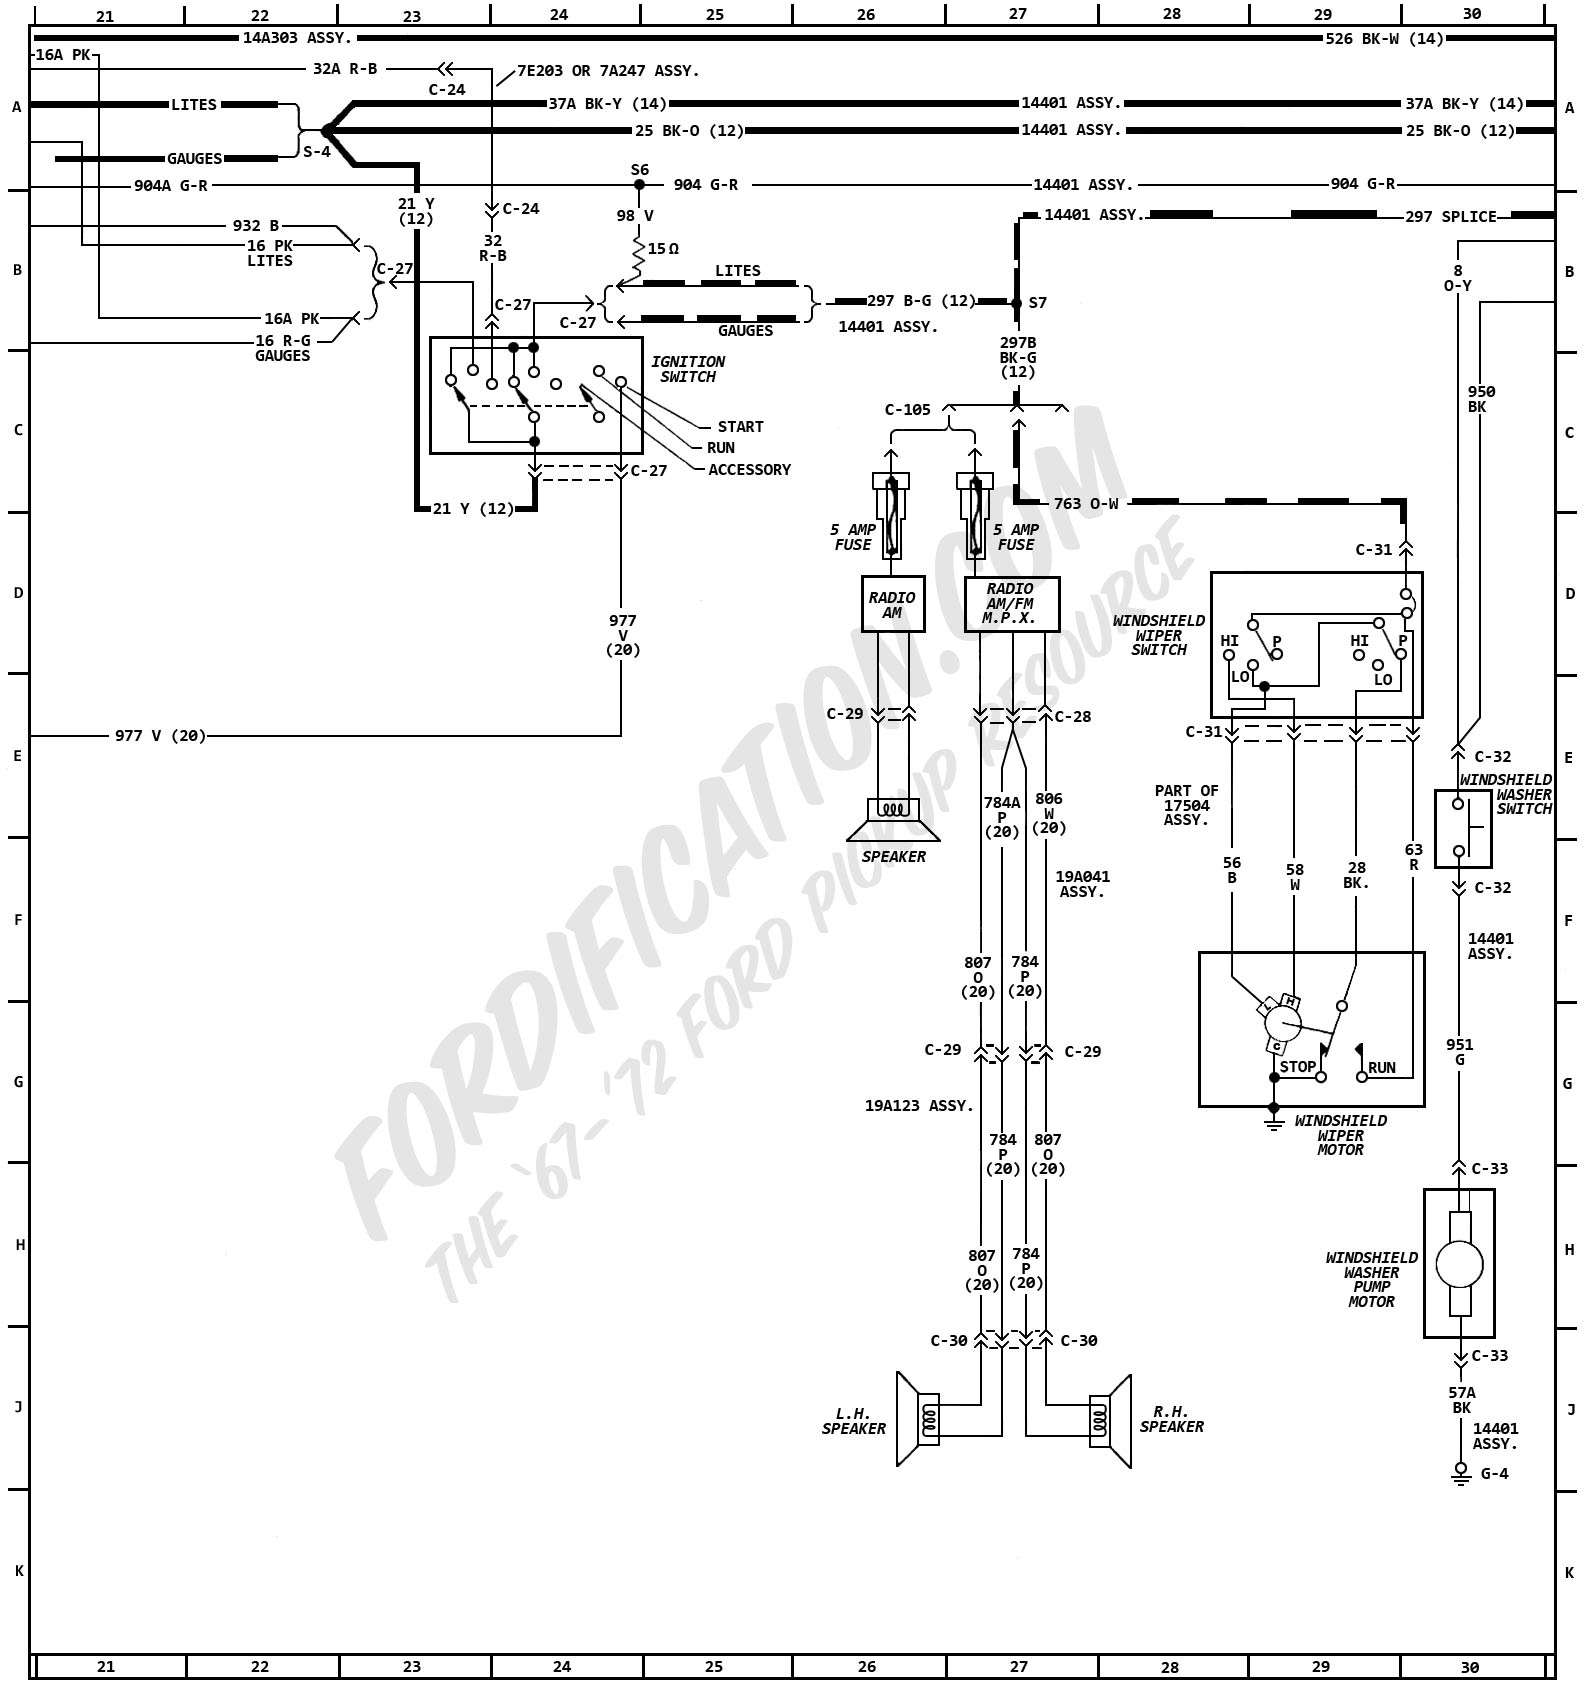 1995 ford truck windshield wiper wiring diagram example electrical rh cranejapan co Chevy Wiper Motor Wiring Diagram 2011 Ford Wiper Motor Diagram